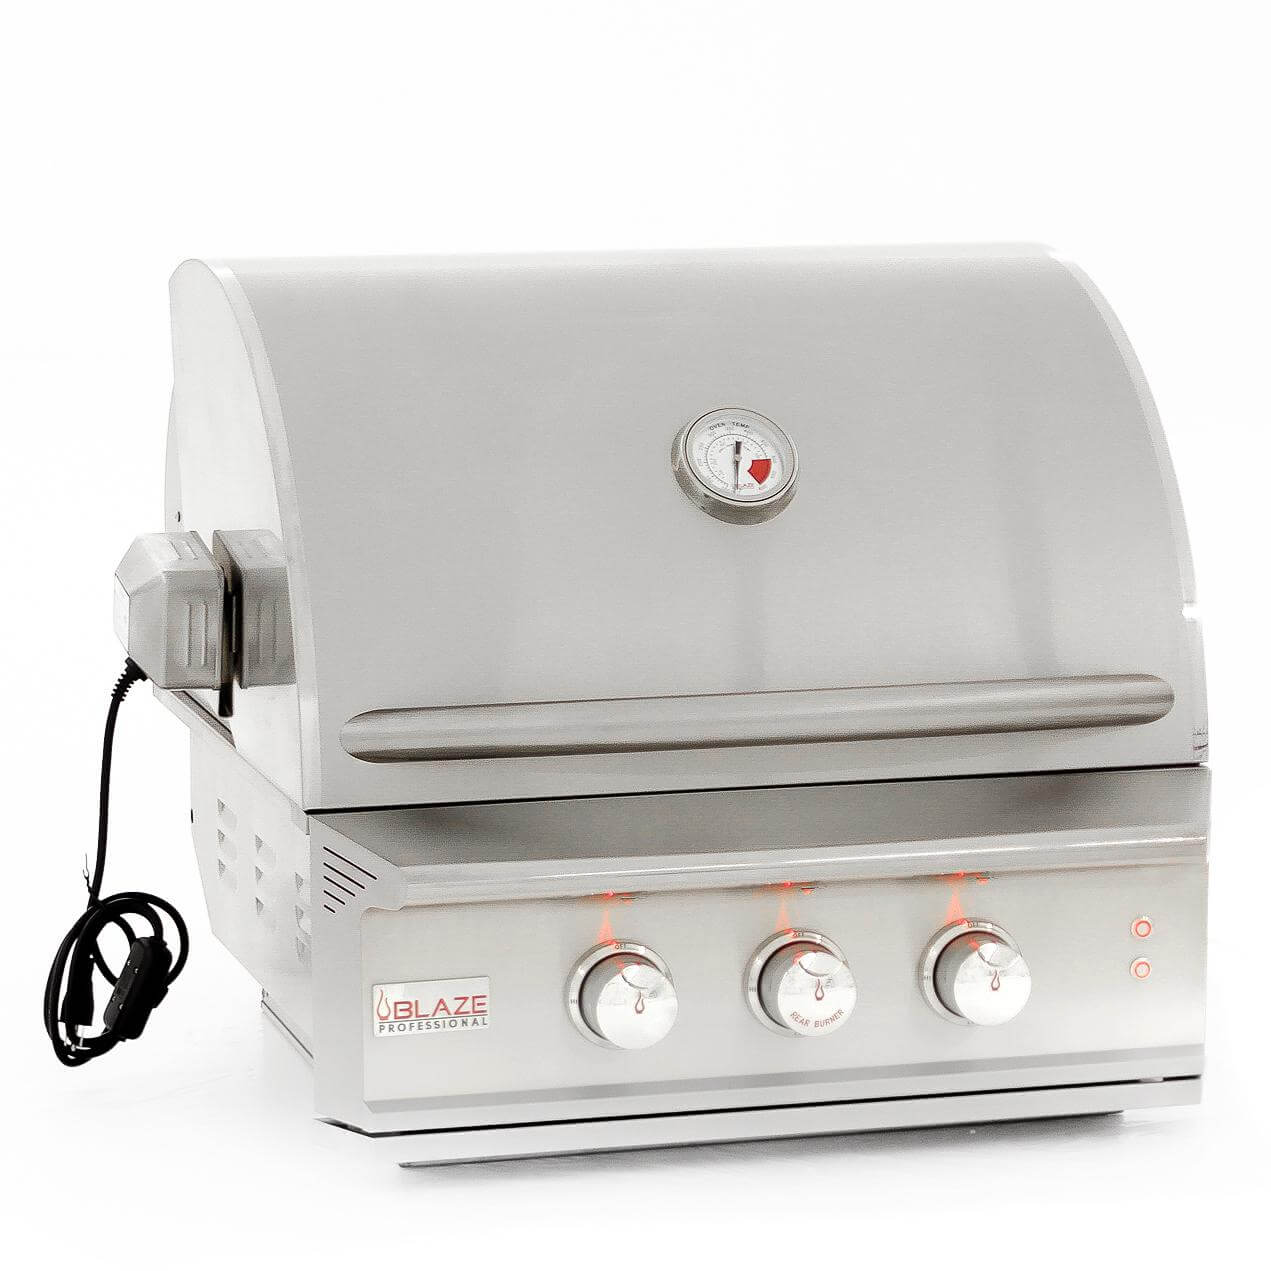 Blaze 27 2 Burner Professional Grill Bbq Grill People